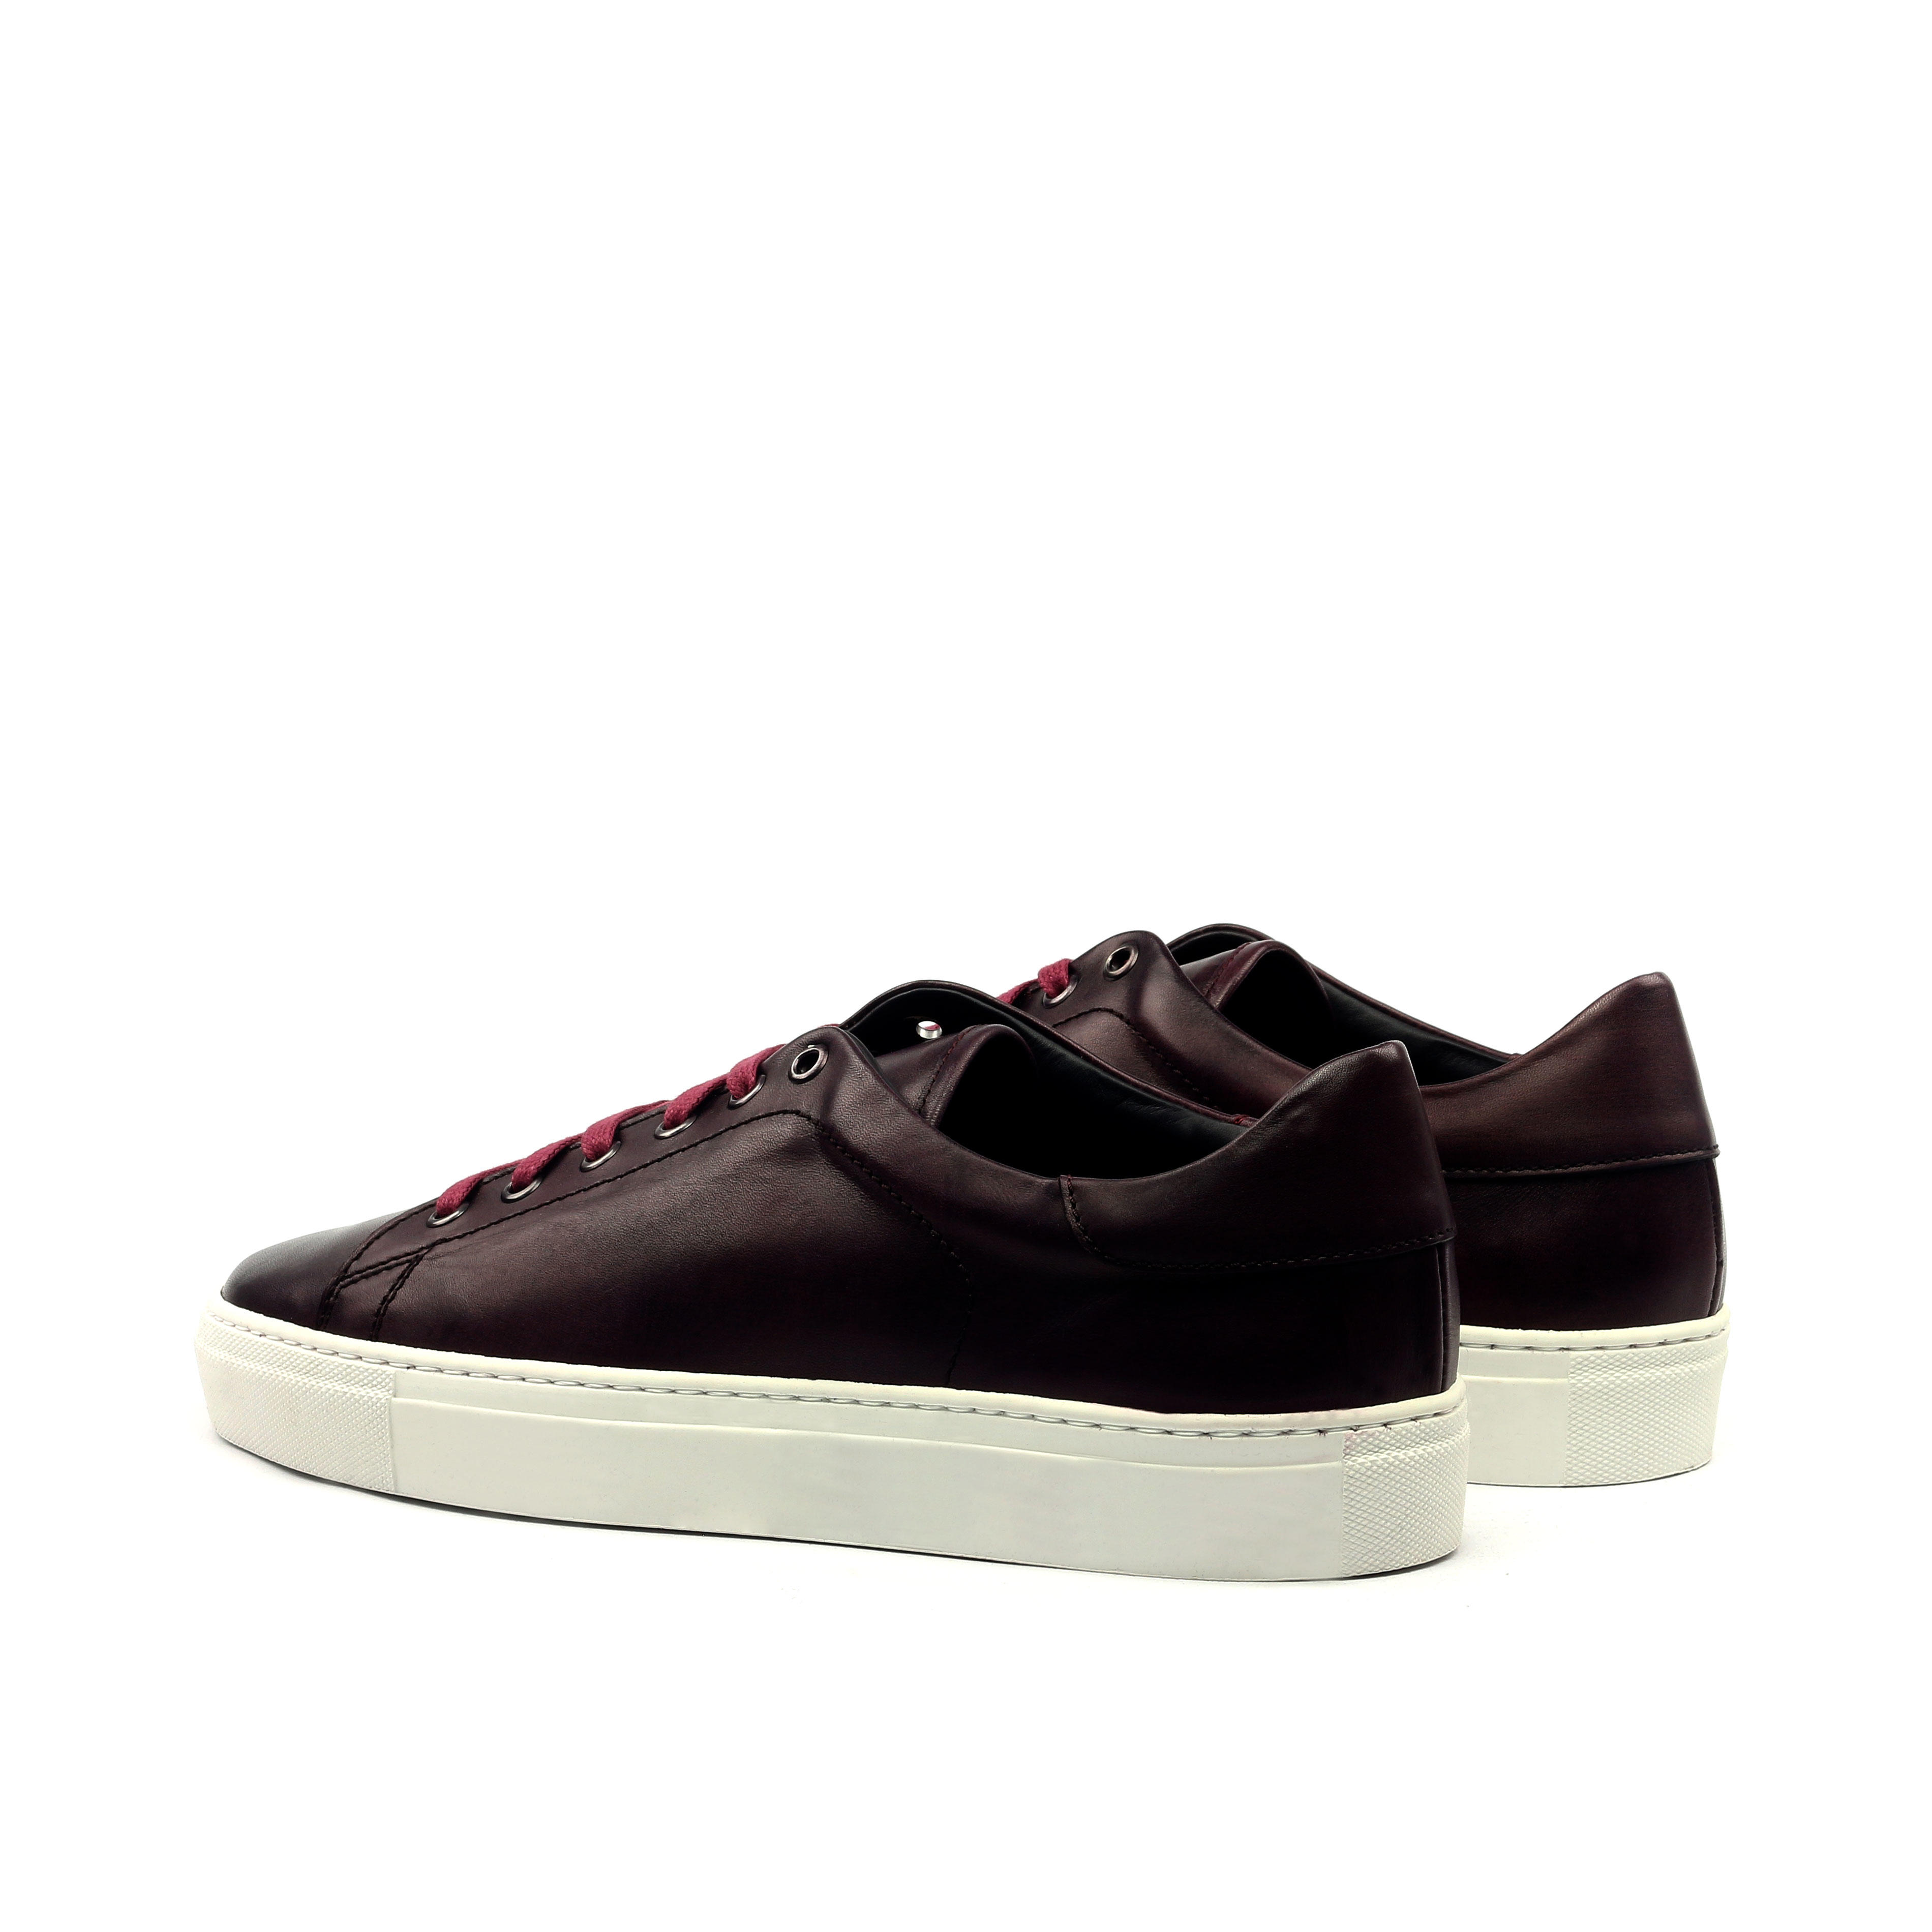 MANOR OF LONDON 'The Perry' Painted Oxblood Calfskin Tennis Trainer Luxury Custom Initials Monogrammed Back Side View